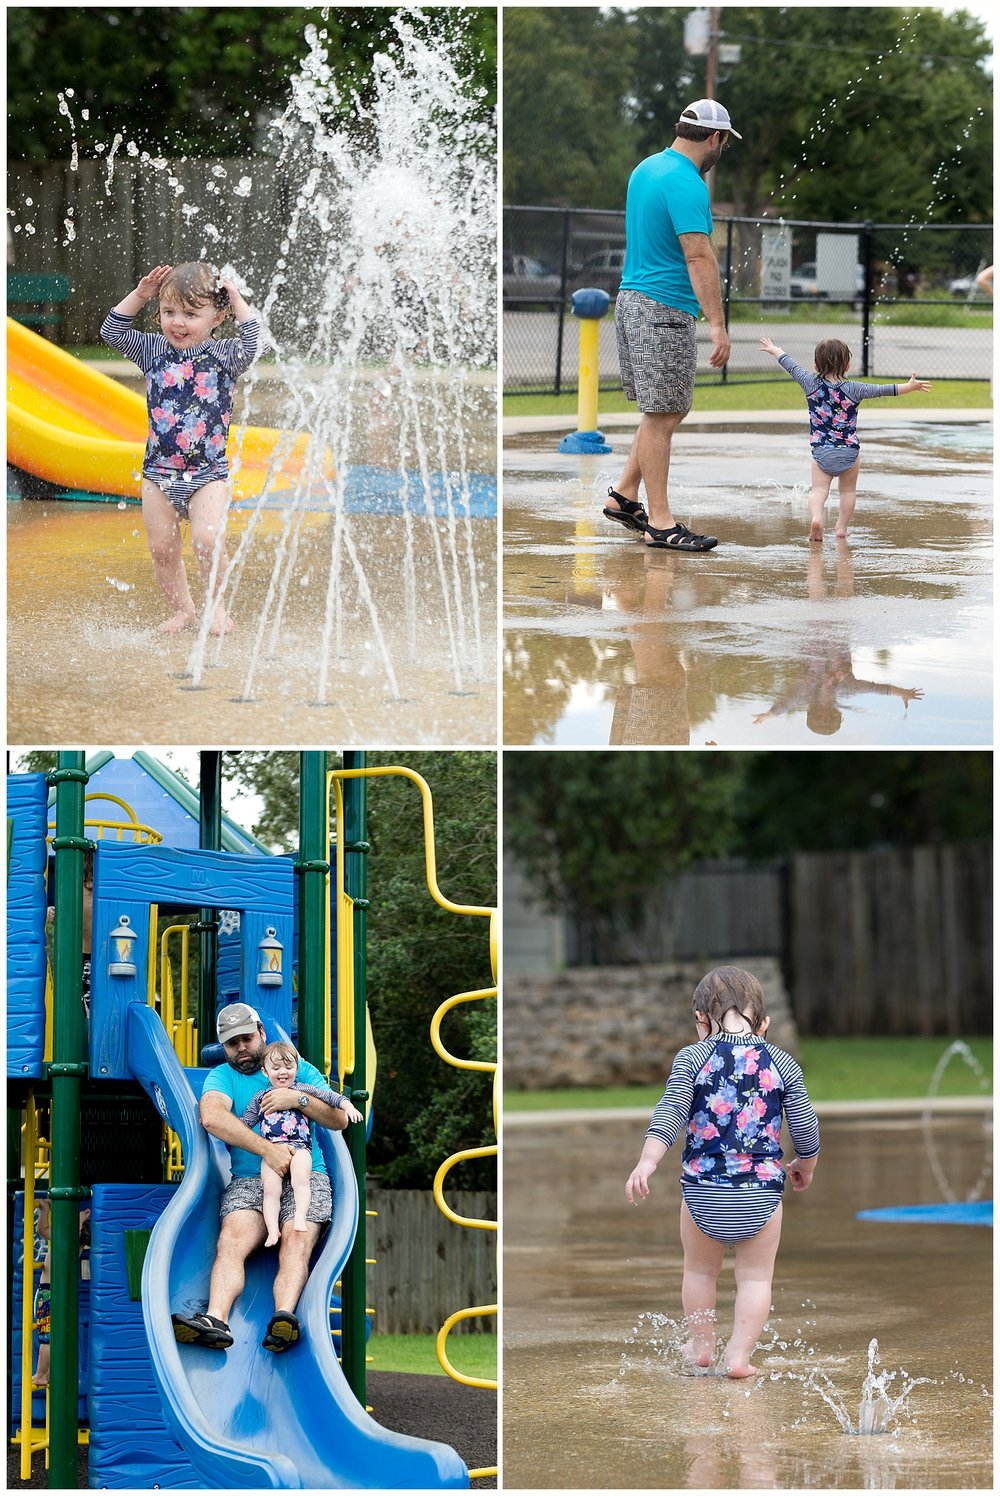 dad and daughter at Ocean Springs splash park